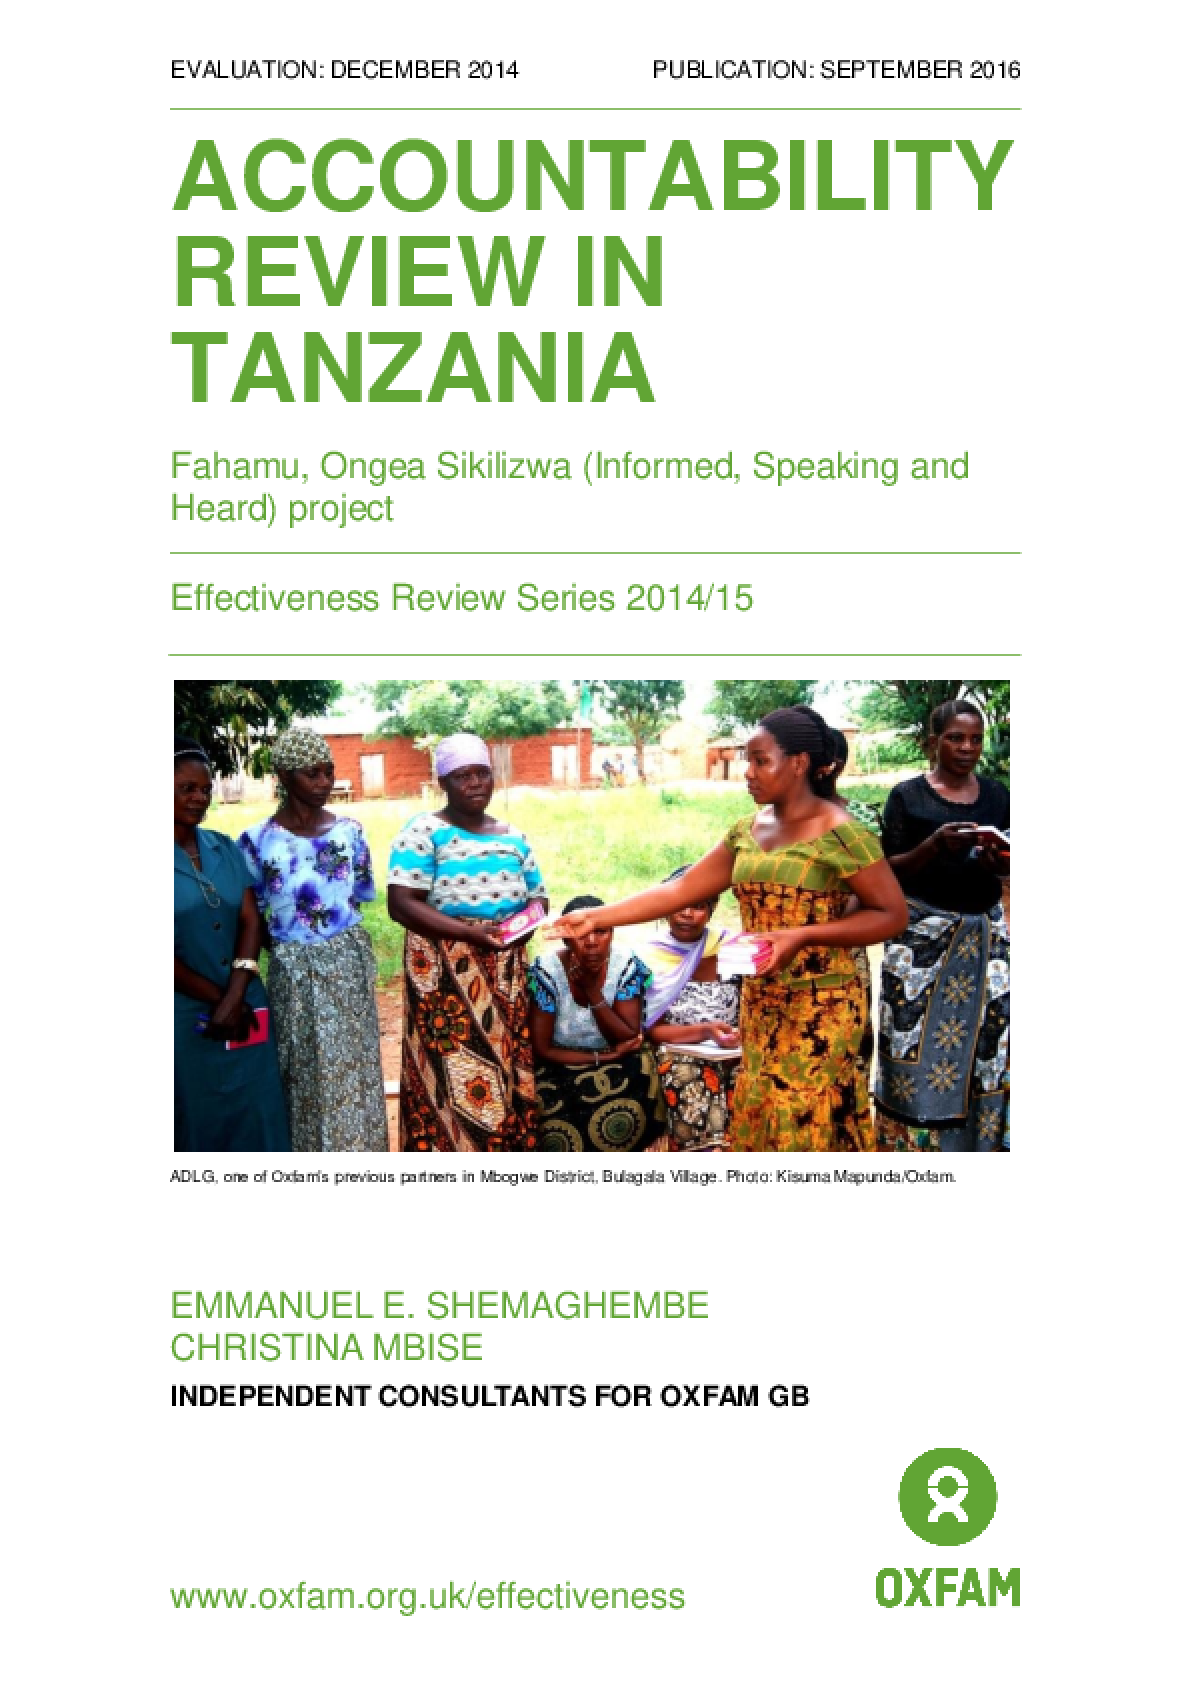 Accountability Review in Tanzania: Fahamu, Ongea Sikilizwa / Informed, Speaking and Heard project